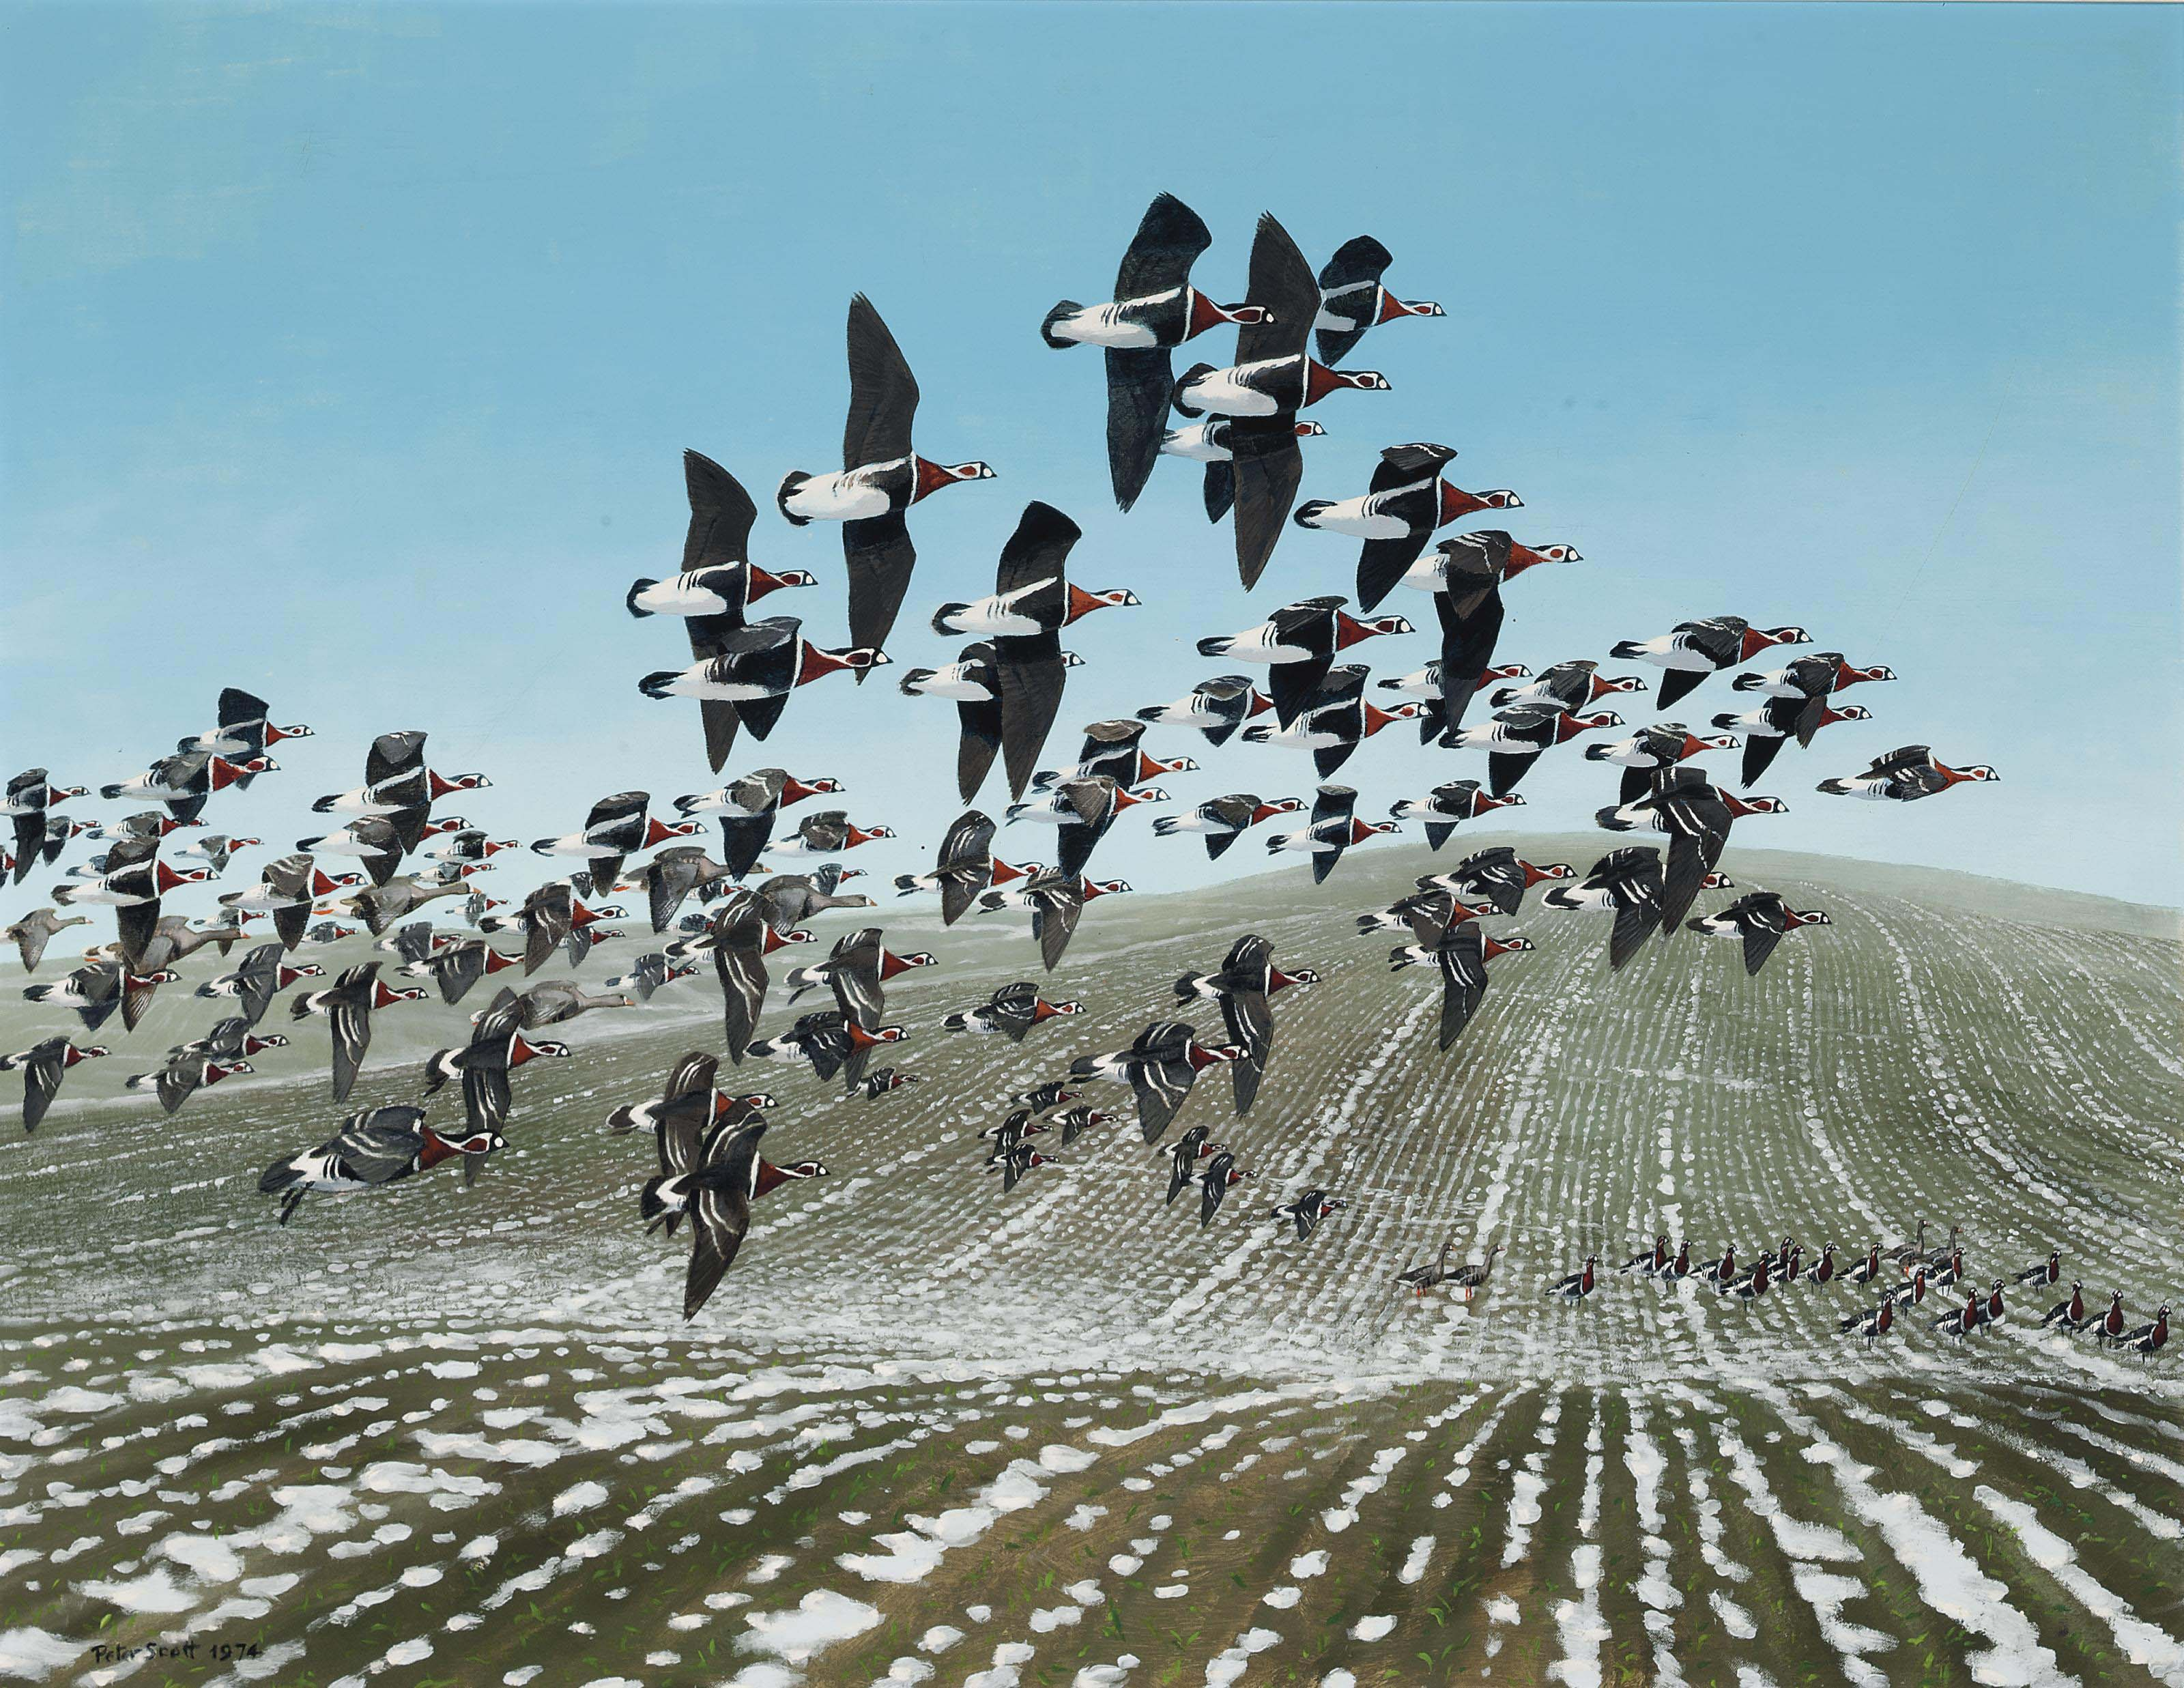 Red breasted geese flying over a ploughed field